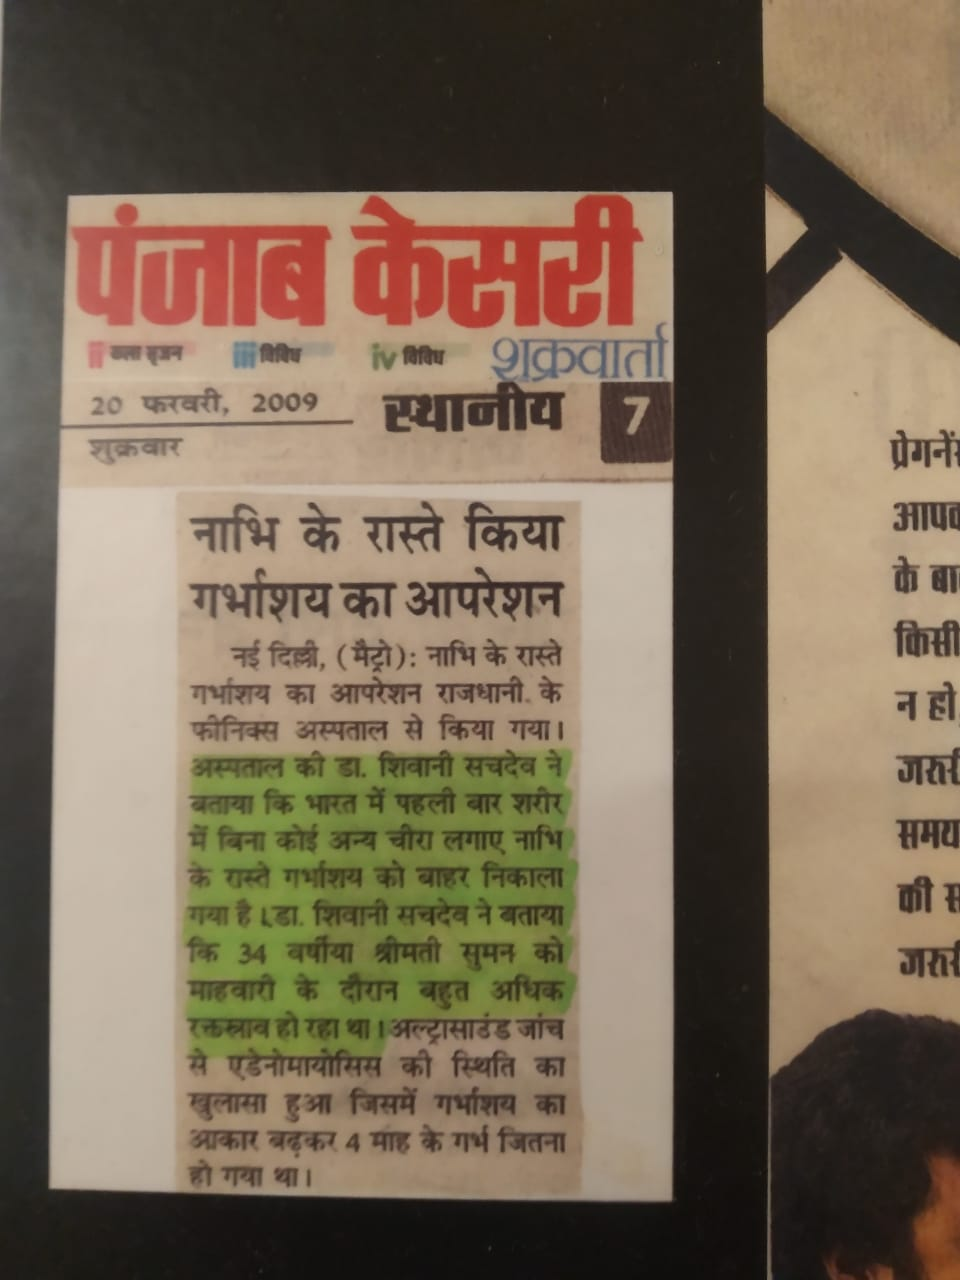 Dr Shivani Sachdev Gour Special and Successful Operation Cover by Punjab Kesari News